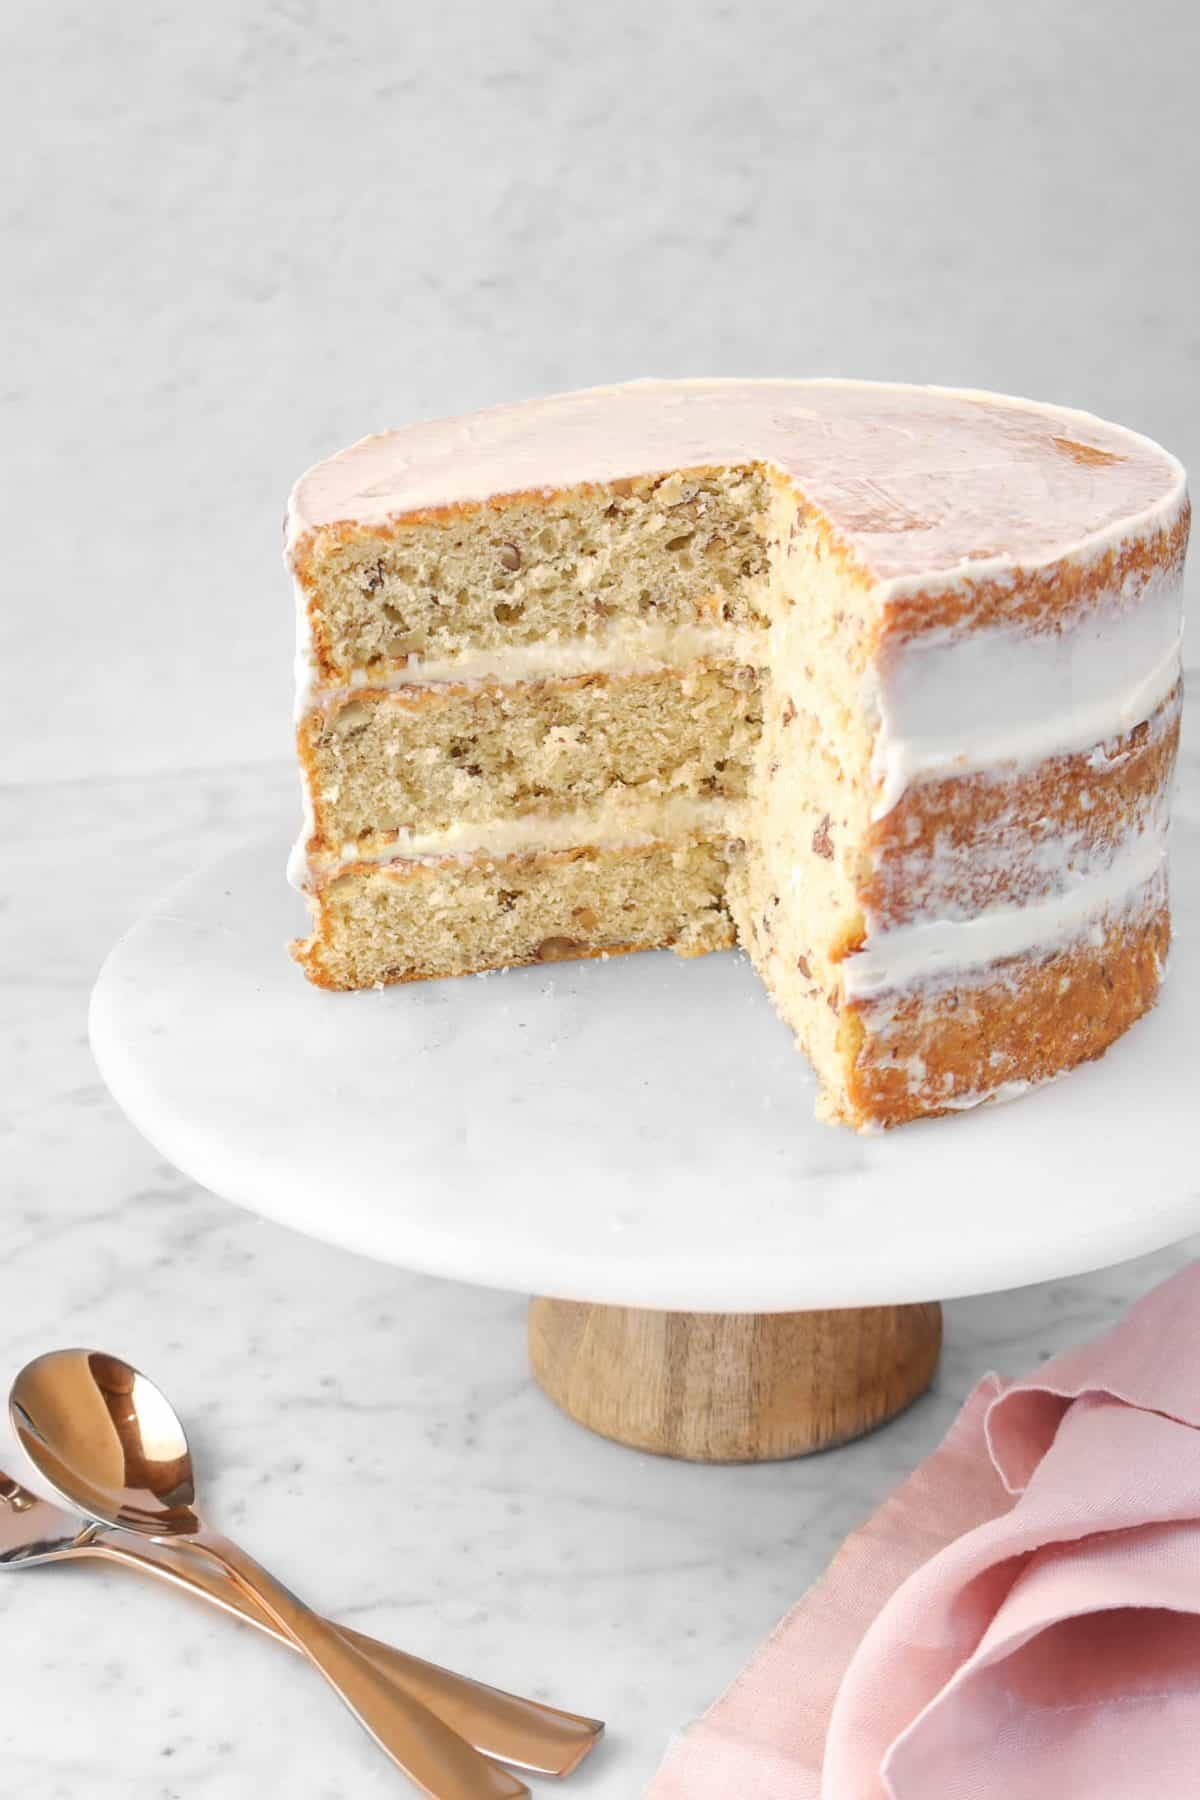 italian cream cake with two slices taken out of it on a marble cake plate with a copper spoon and a pink napkin